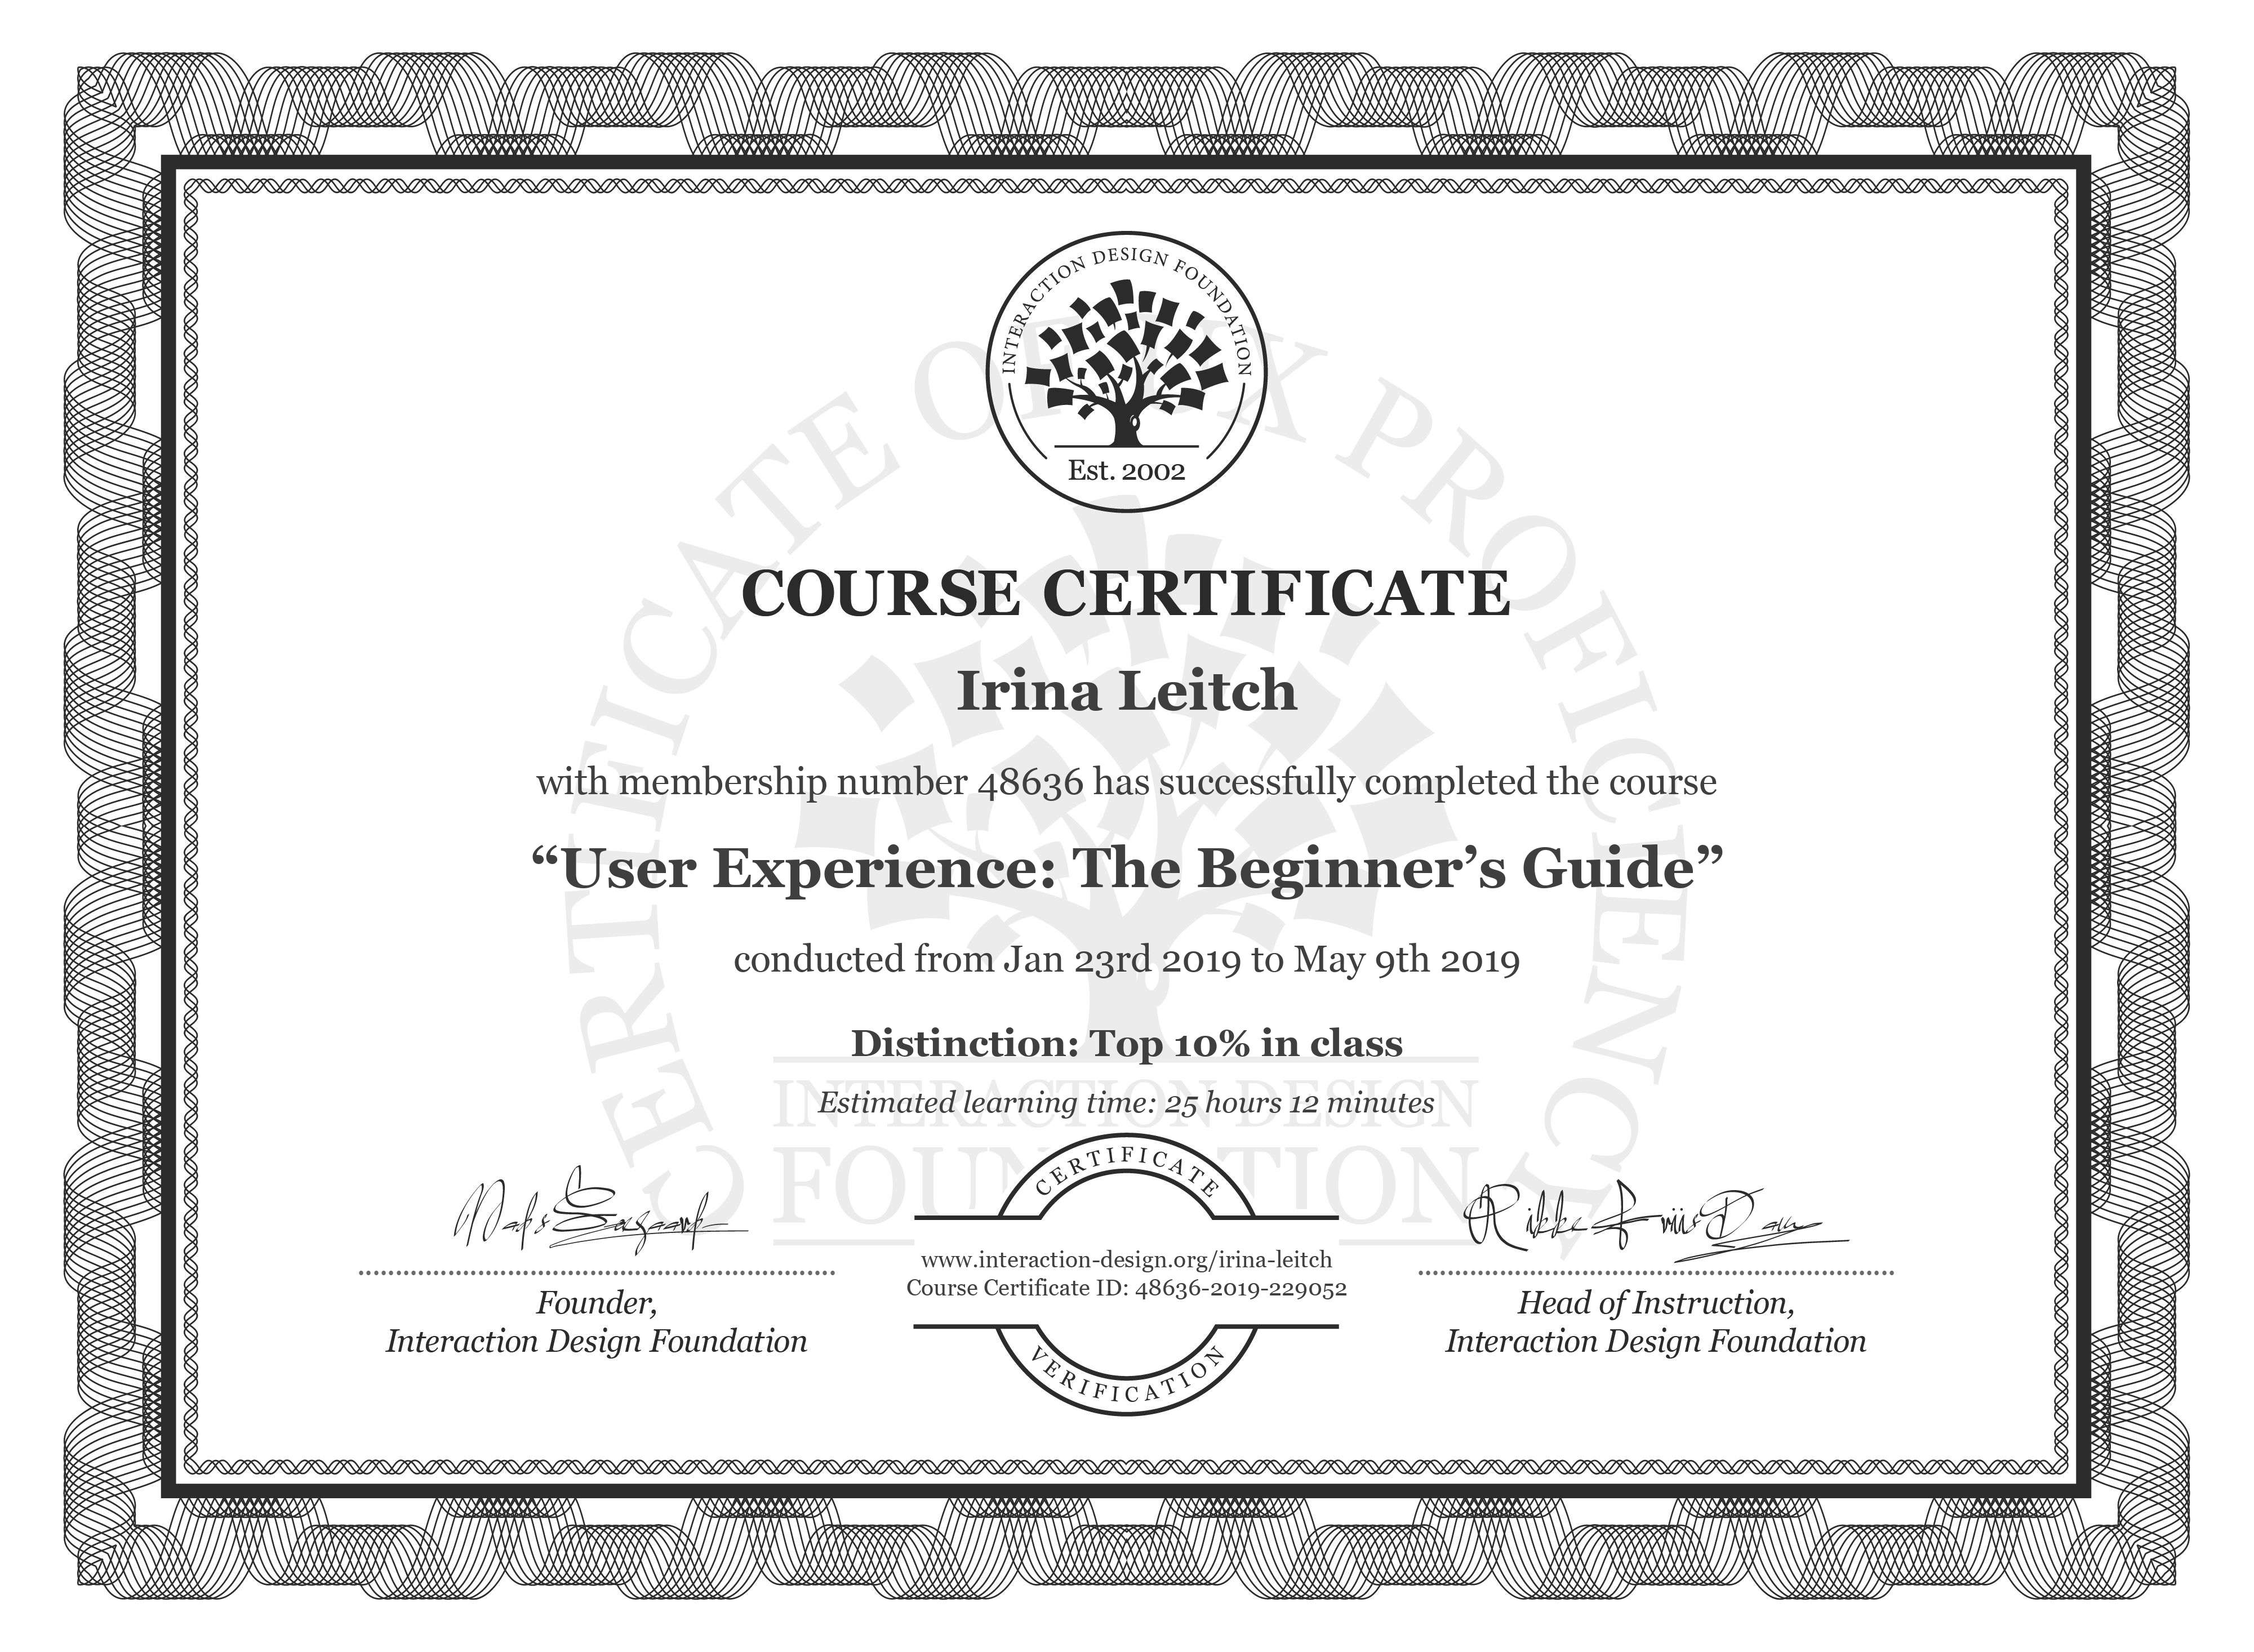 Irina Leitch's Course Certificate: Become a UX Designer from Scratch